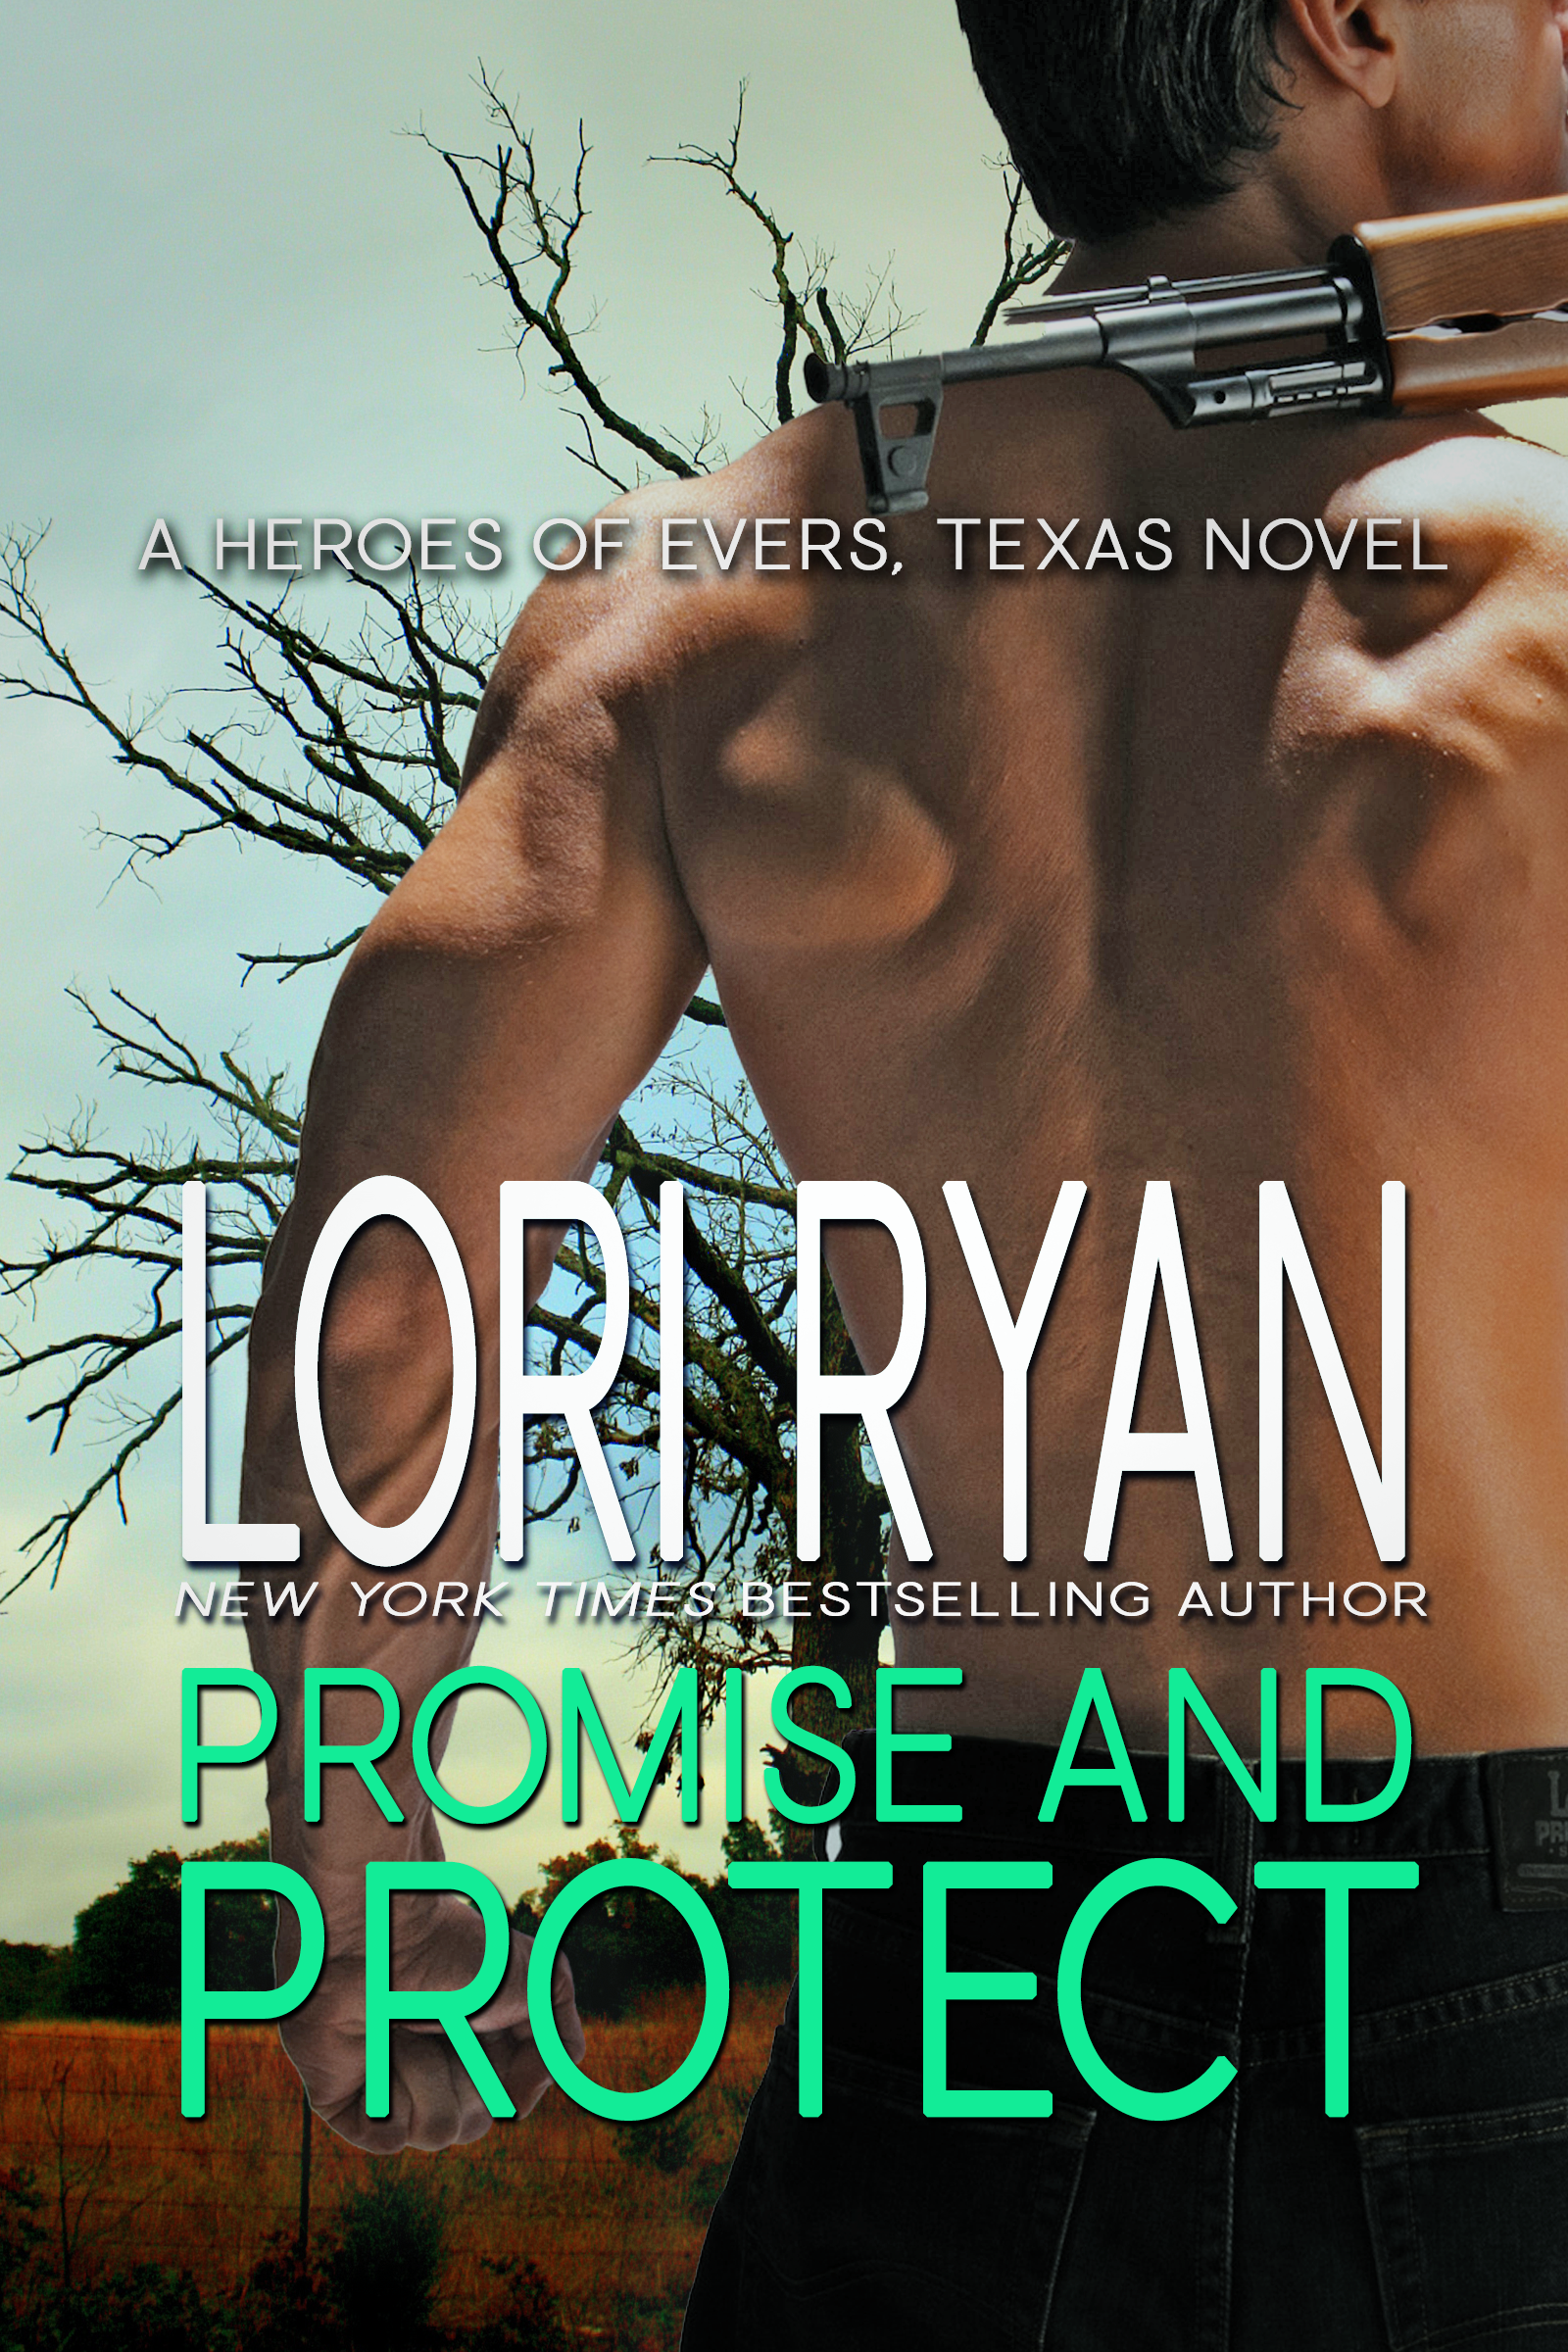 Promise and Protect: a small town romantic suspense